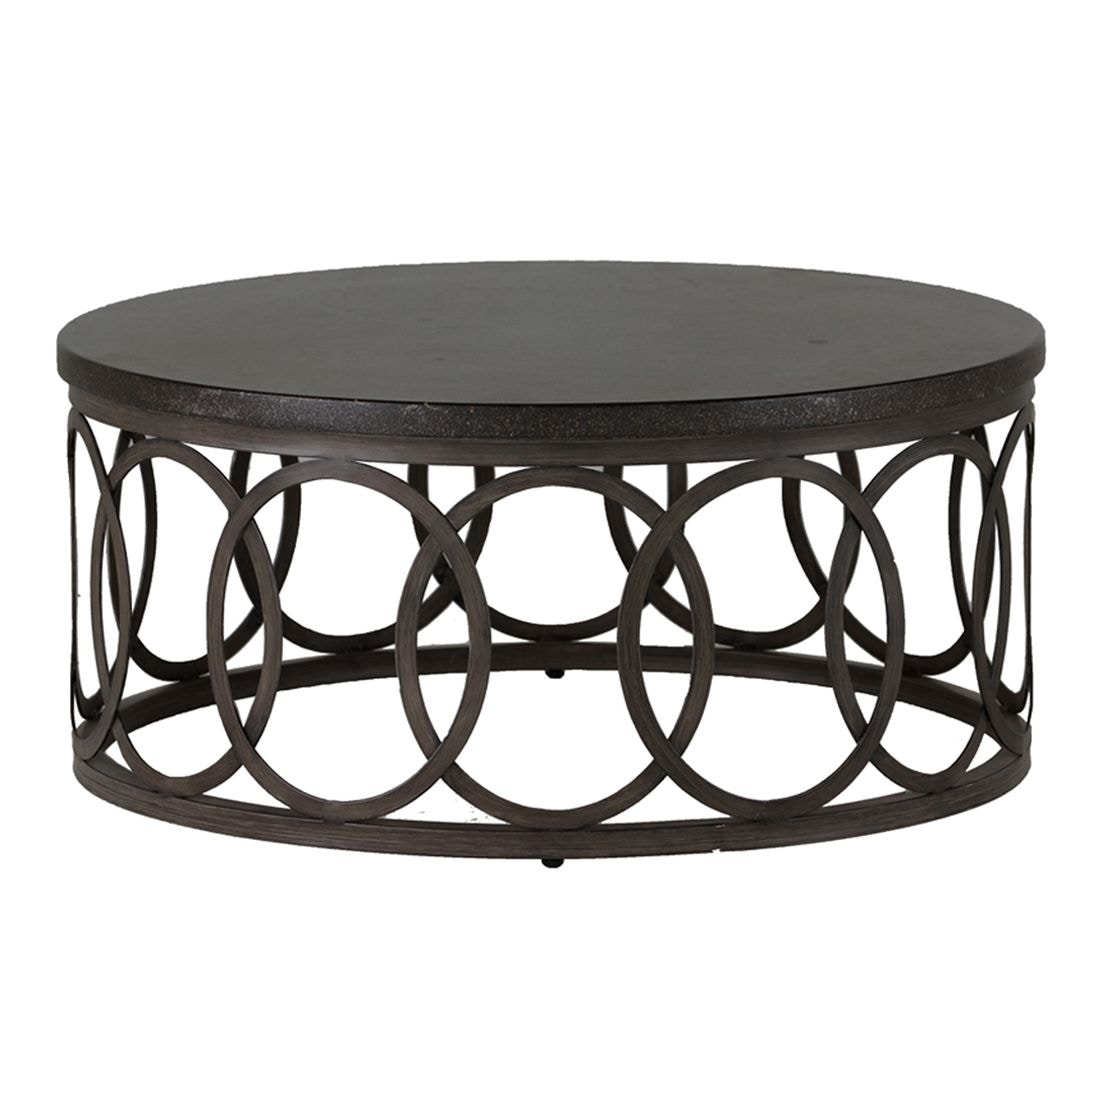 High Quality Summer Classics Ella Coffee Table SMC44132 From Walter E. Smithe Furniture  + Design